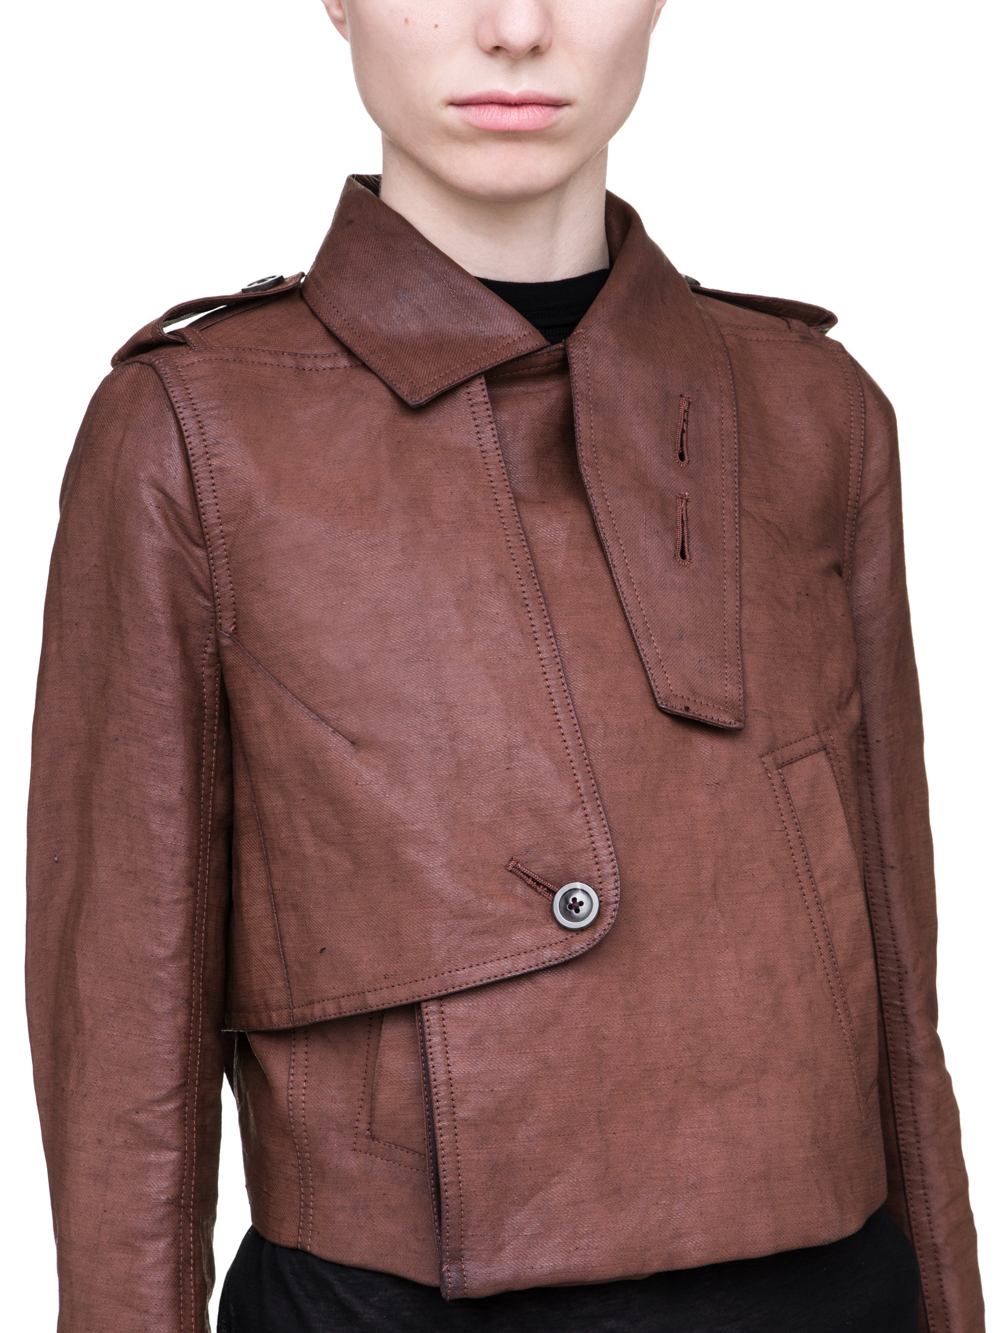 RICK OWENS SS19 BABEL SHORT TRENCH IN BLOOD RED WAXED COTTON